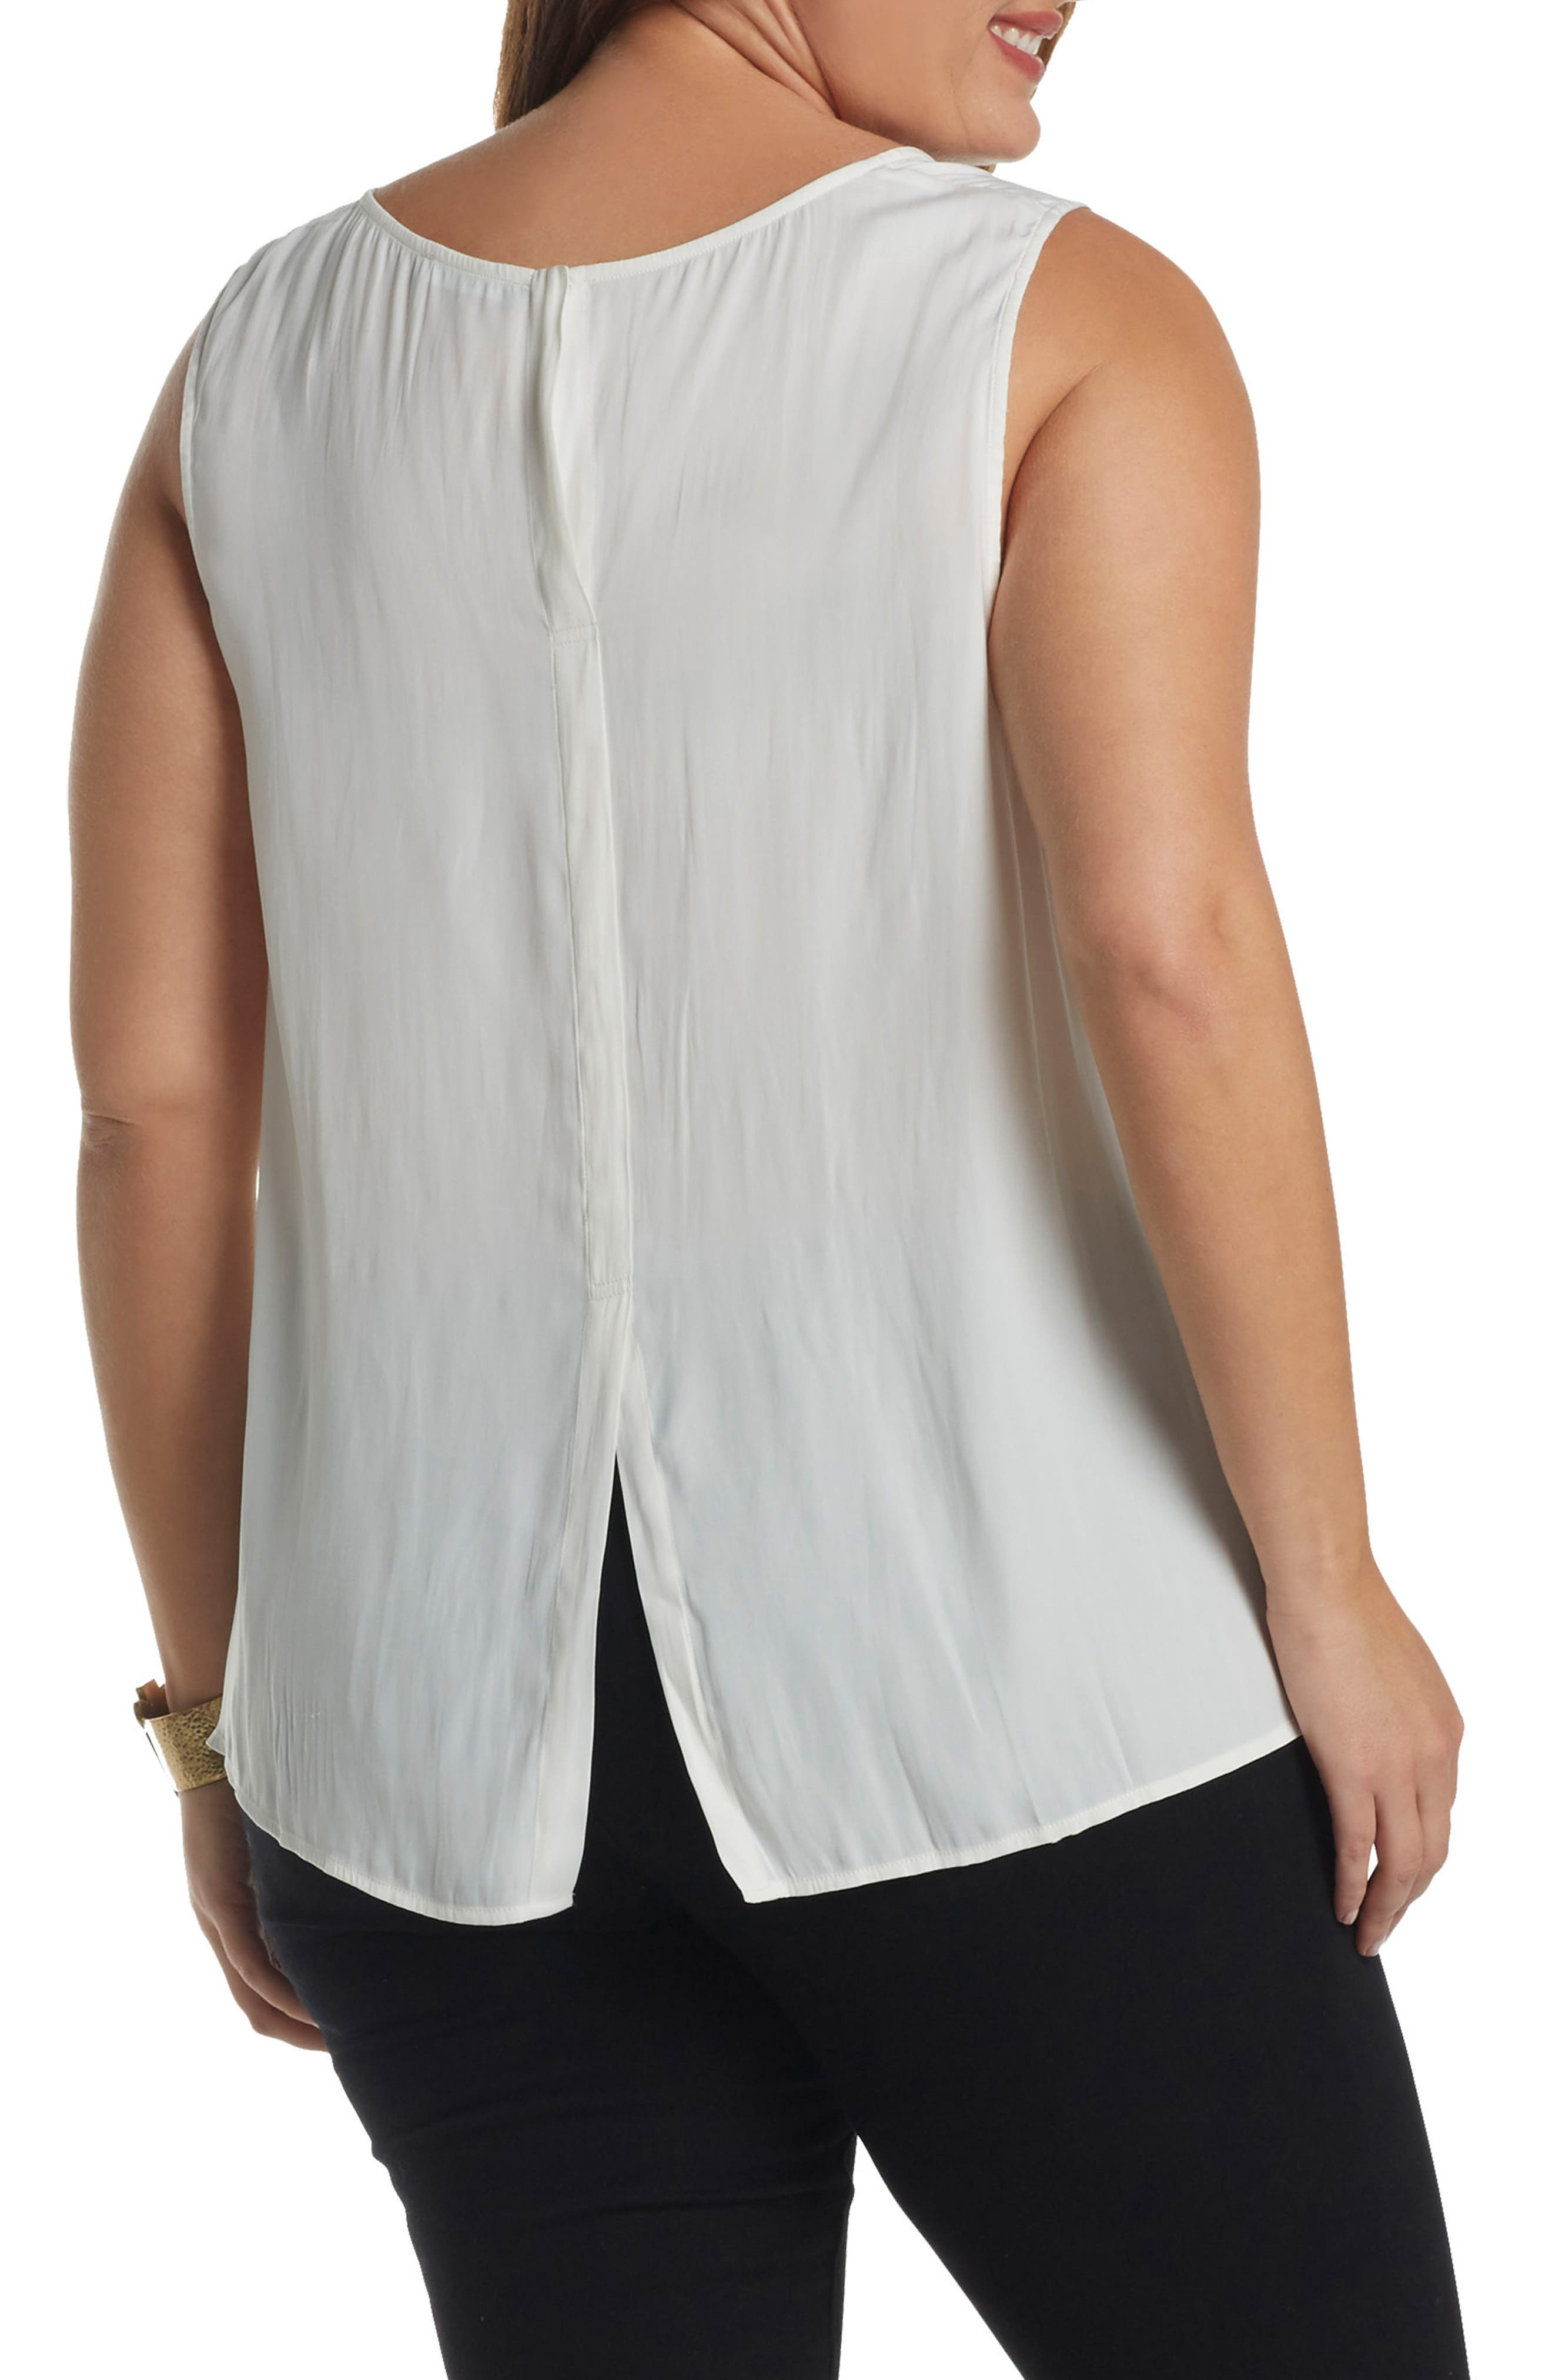 Angelle Sleeveless Top,                             Alternate thumbnail 2, color,                             Gardenia